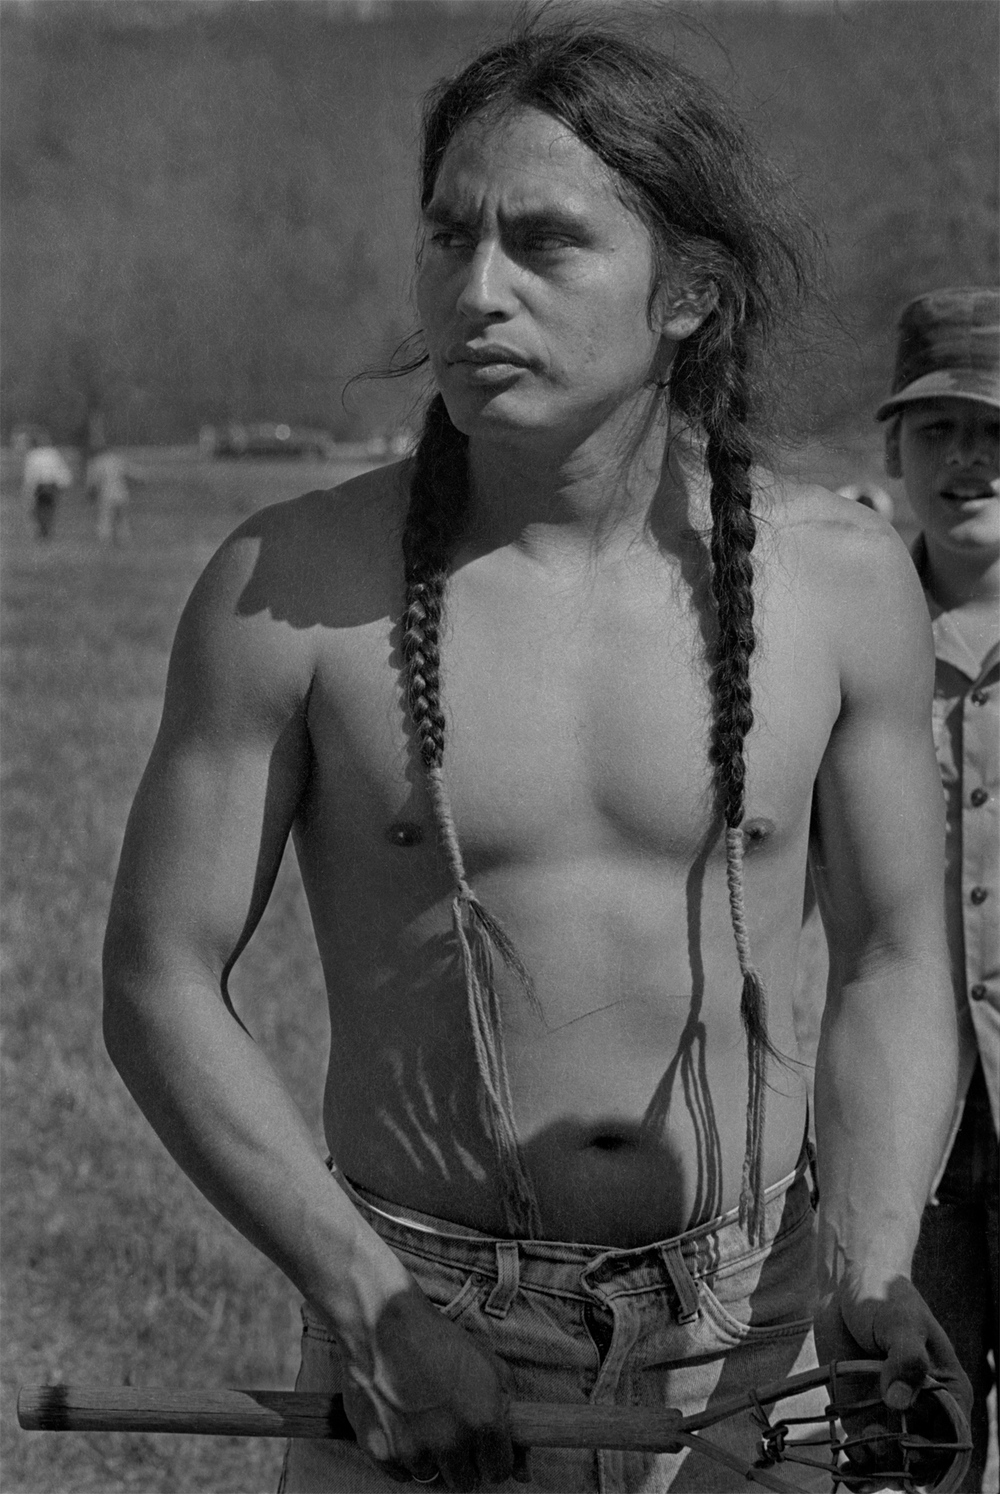 Cherokee Stickball Player at the First Cherokee Tribal Reunion since the Trail of Tears, Red Clay, GA 1984